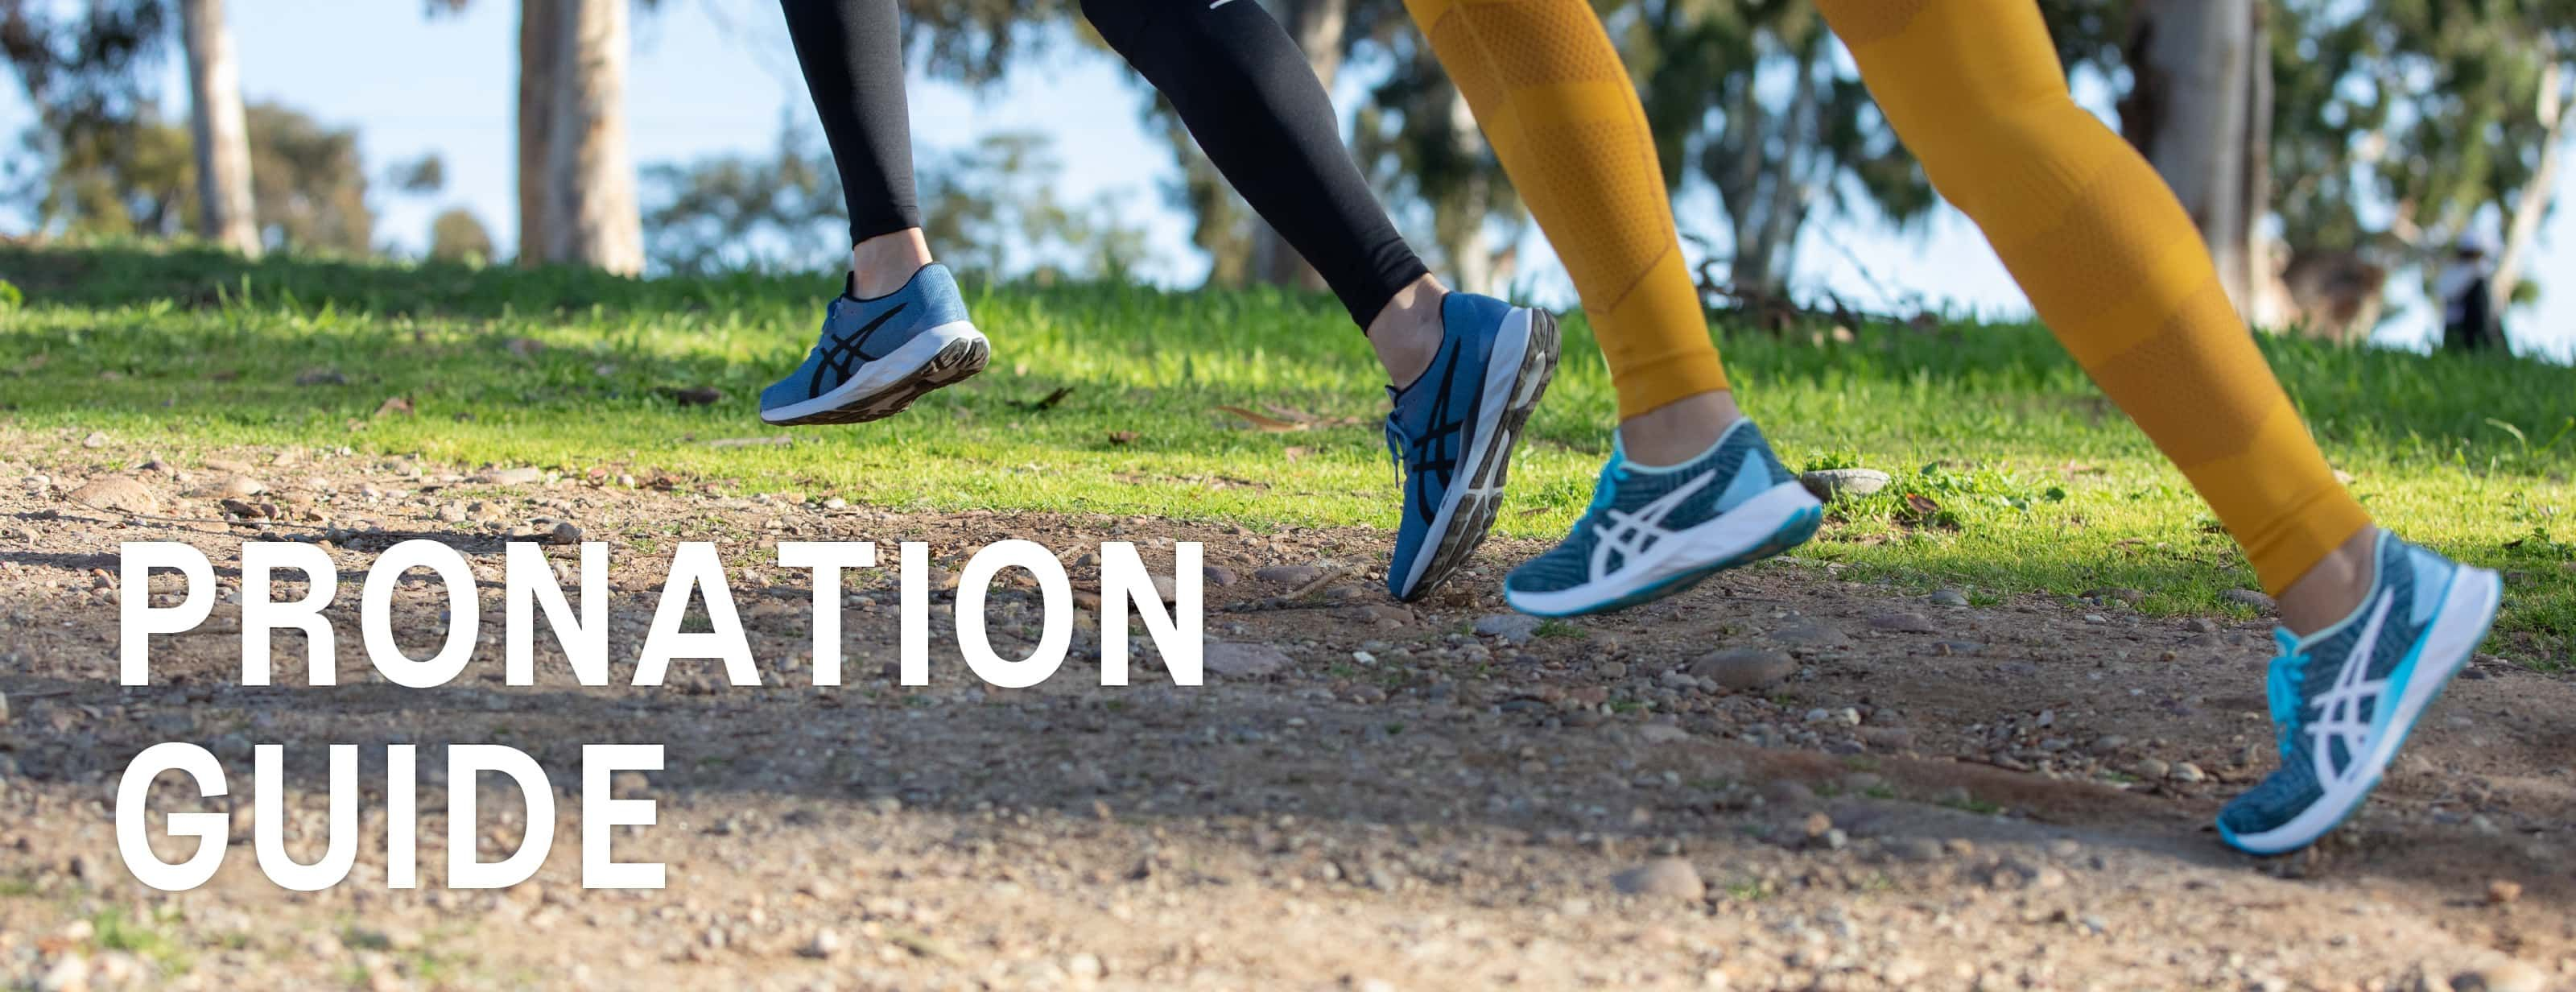 running pronation guide hero pc